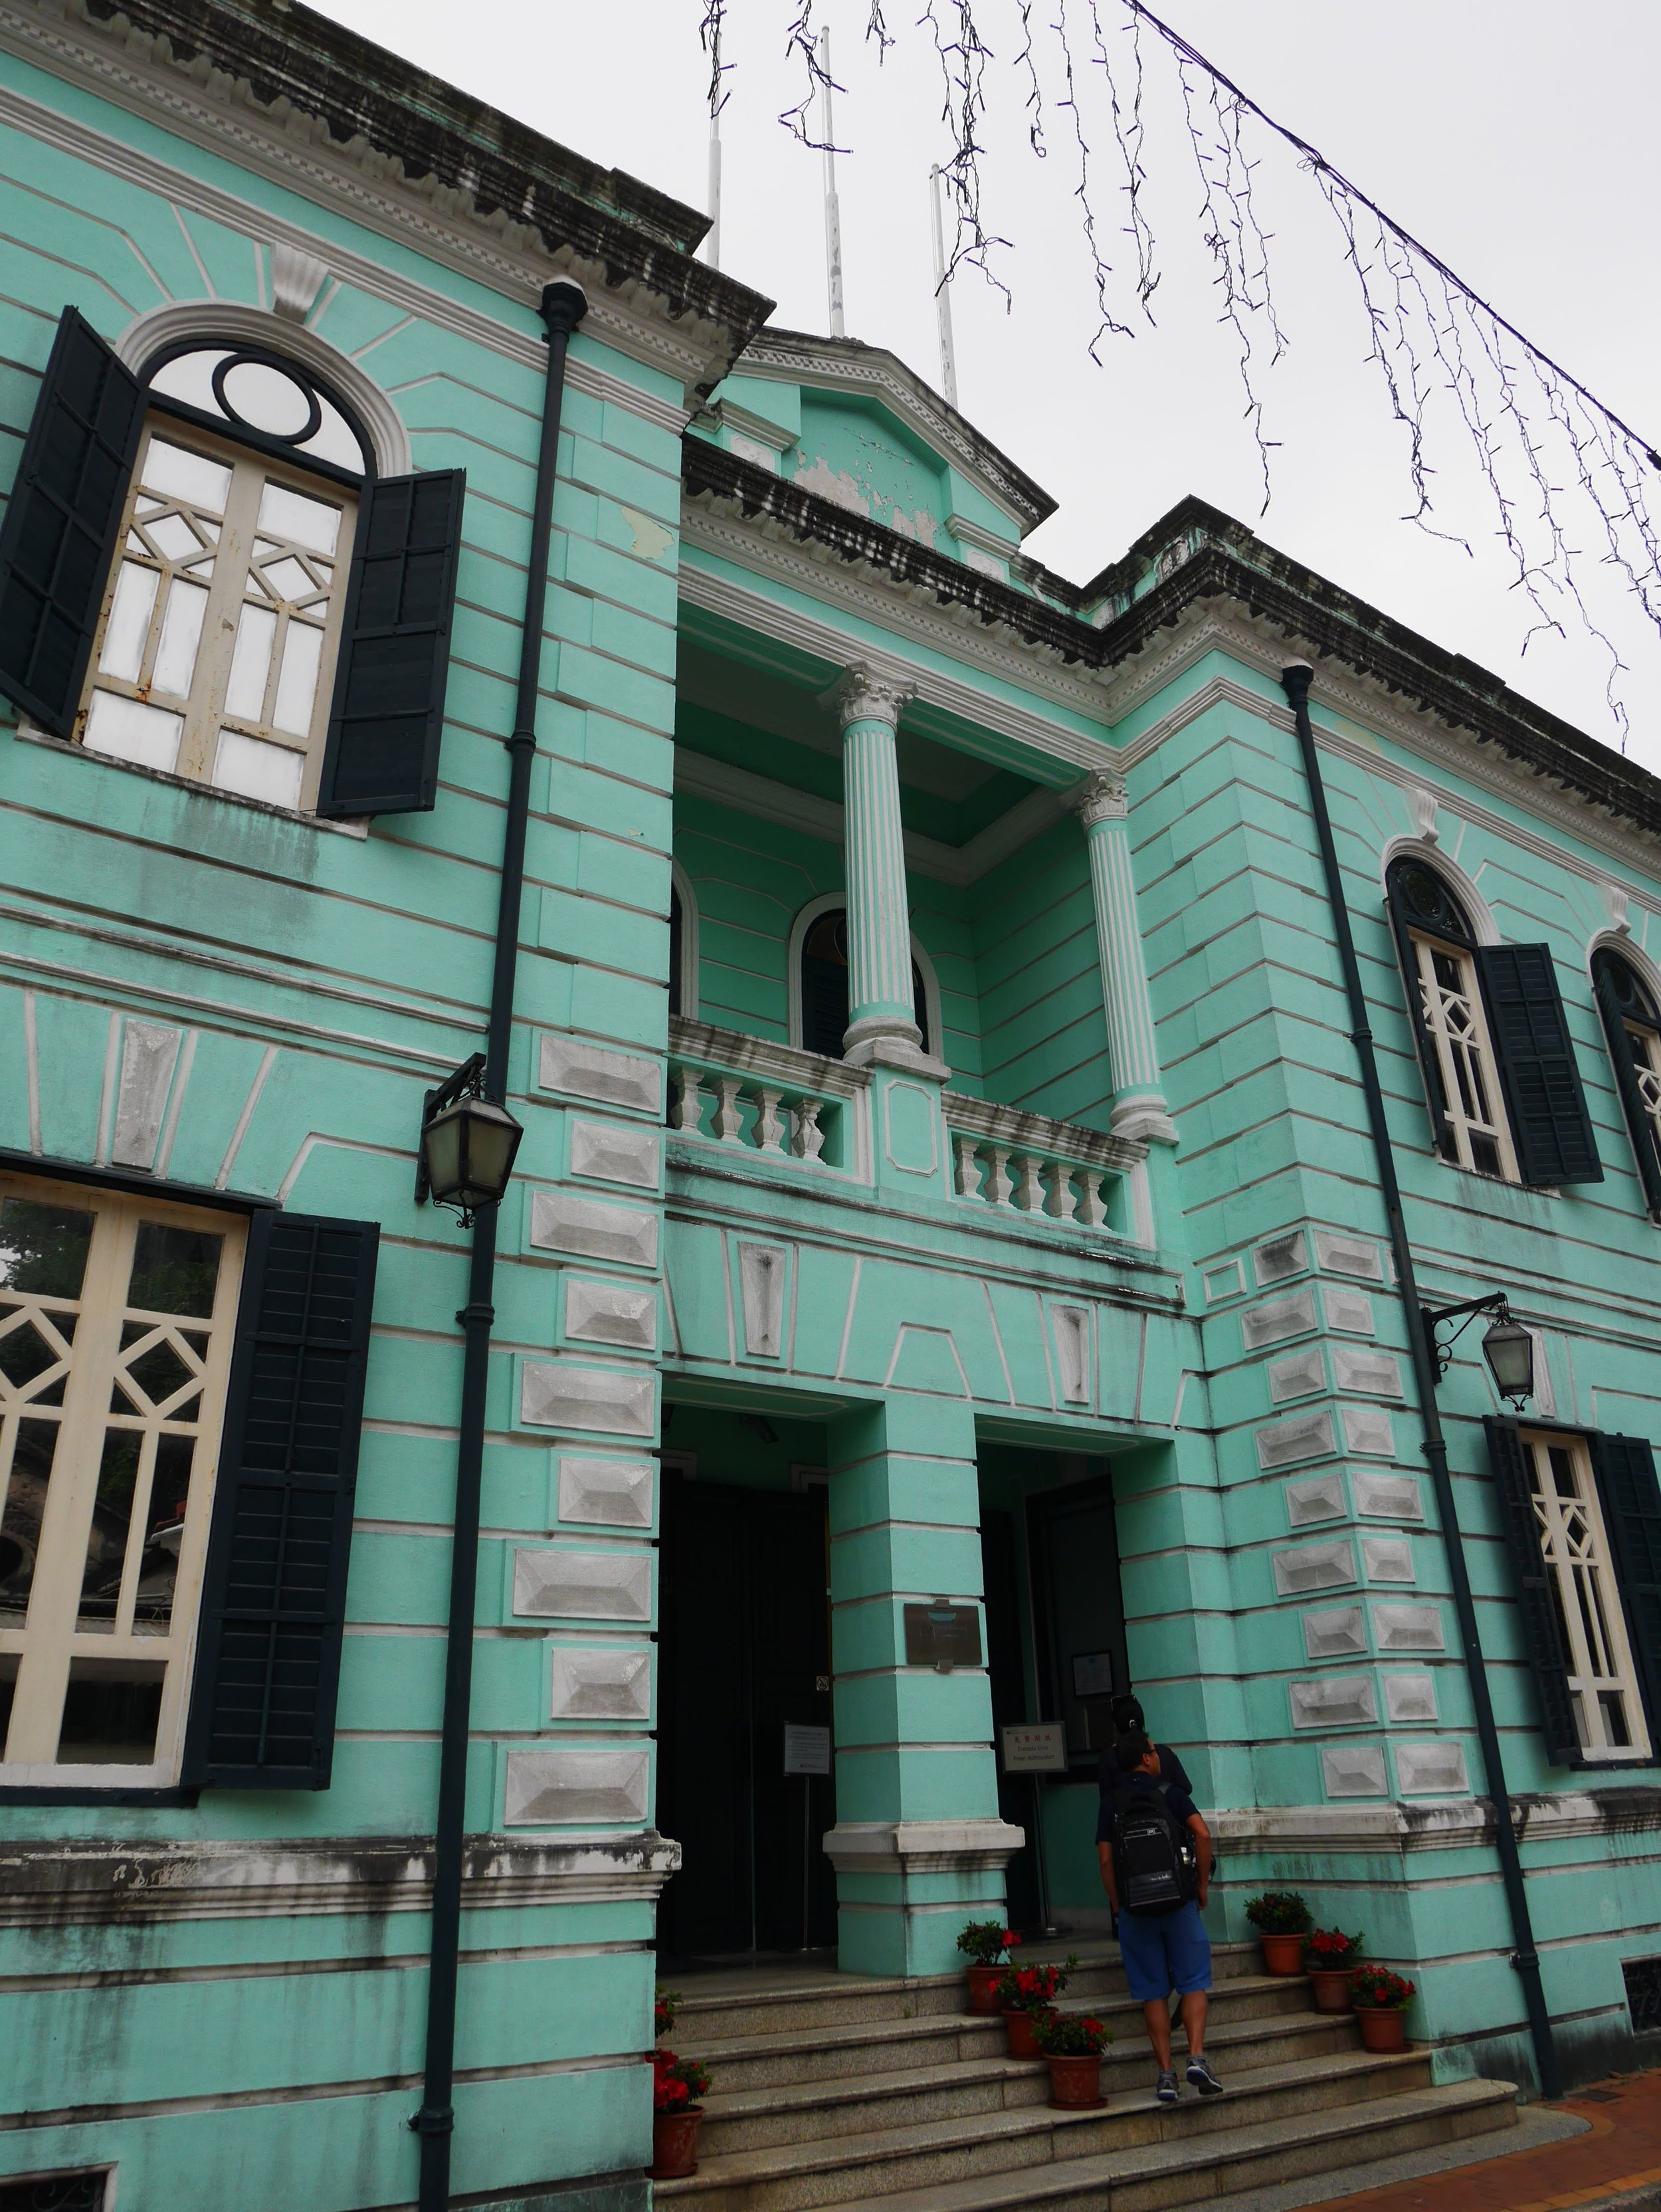 The Museum of Taipa and Coloane History shares the culture of southern Macau